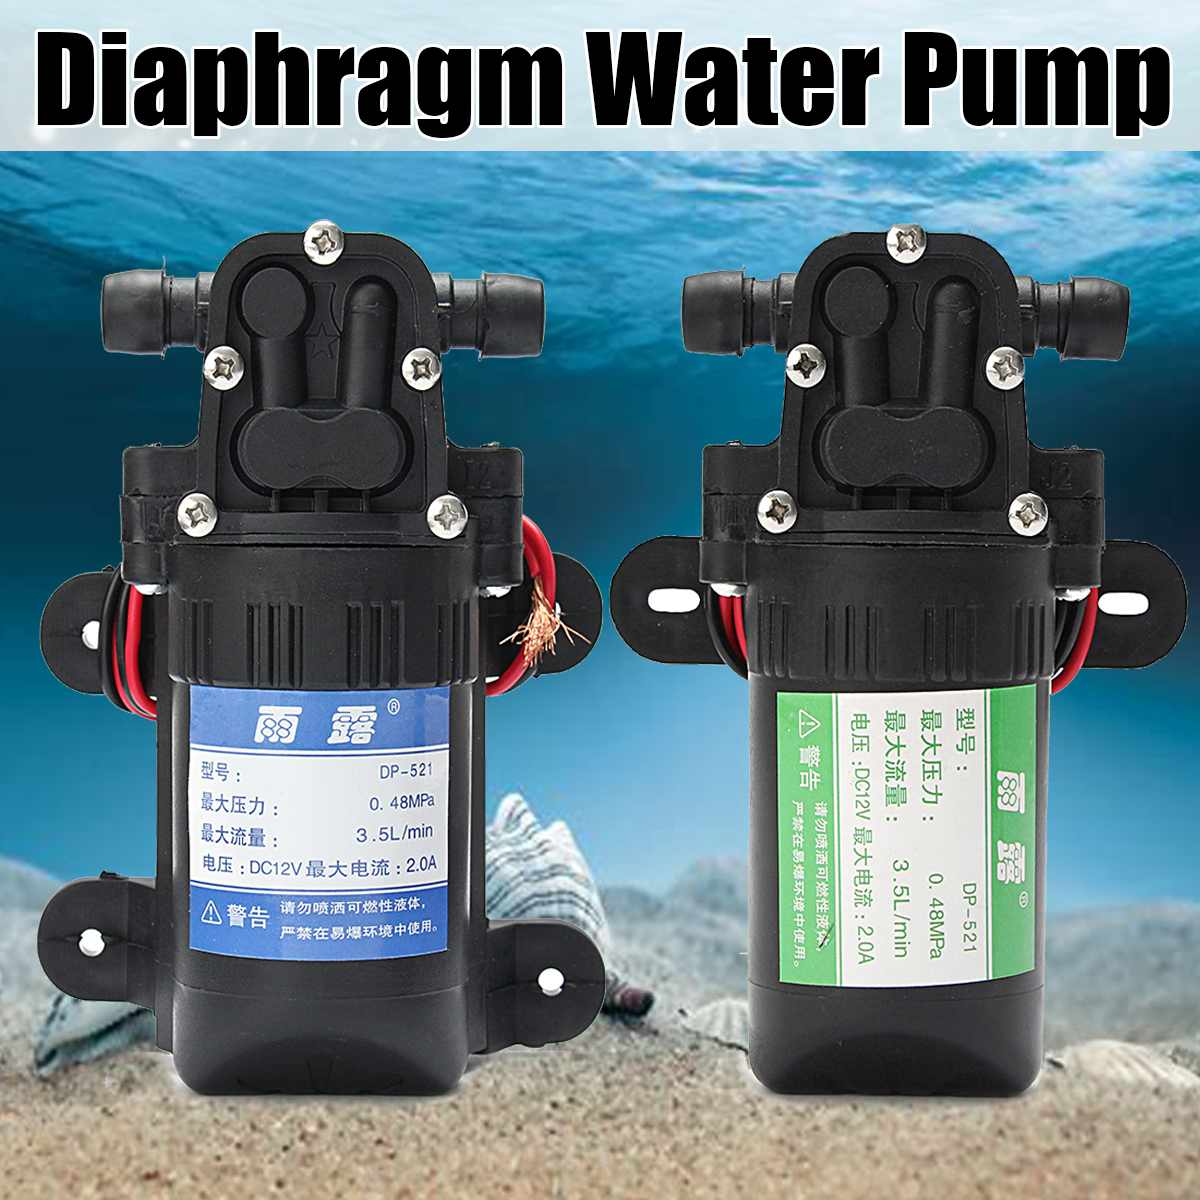 Durable DC 12V 70PSI 3.5L/min Agricultural Electric Water Pump Black Micro High Pressure Diaphragm Water Sprayer Car Wash 12 V image